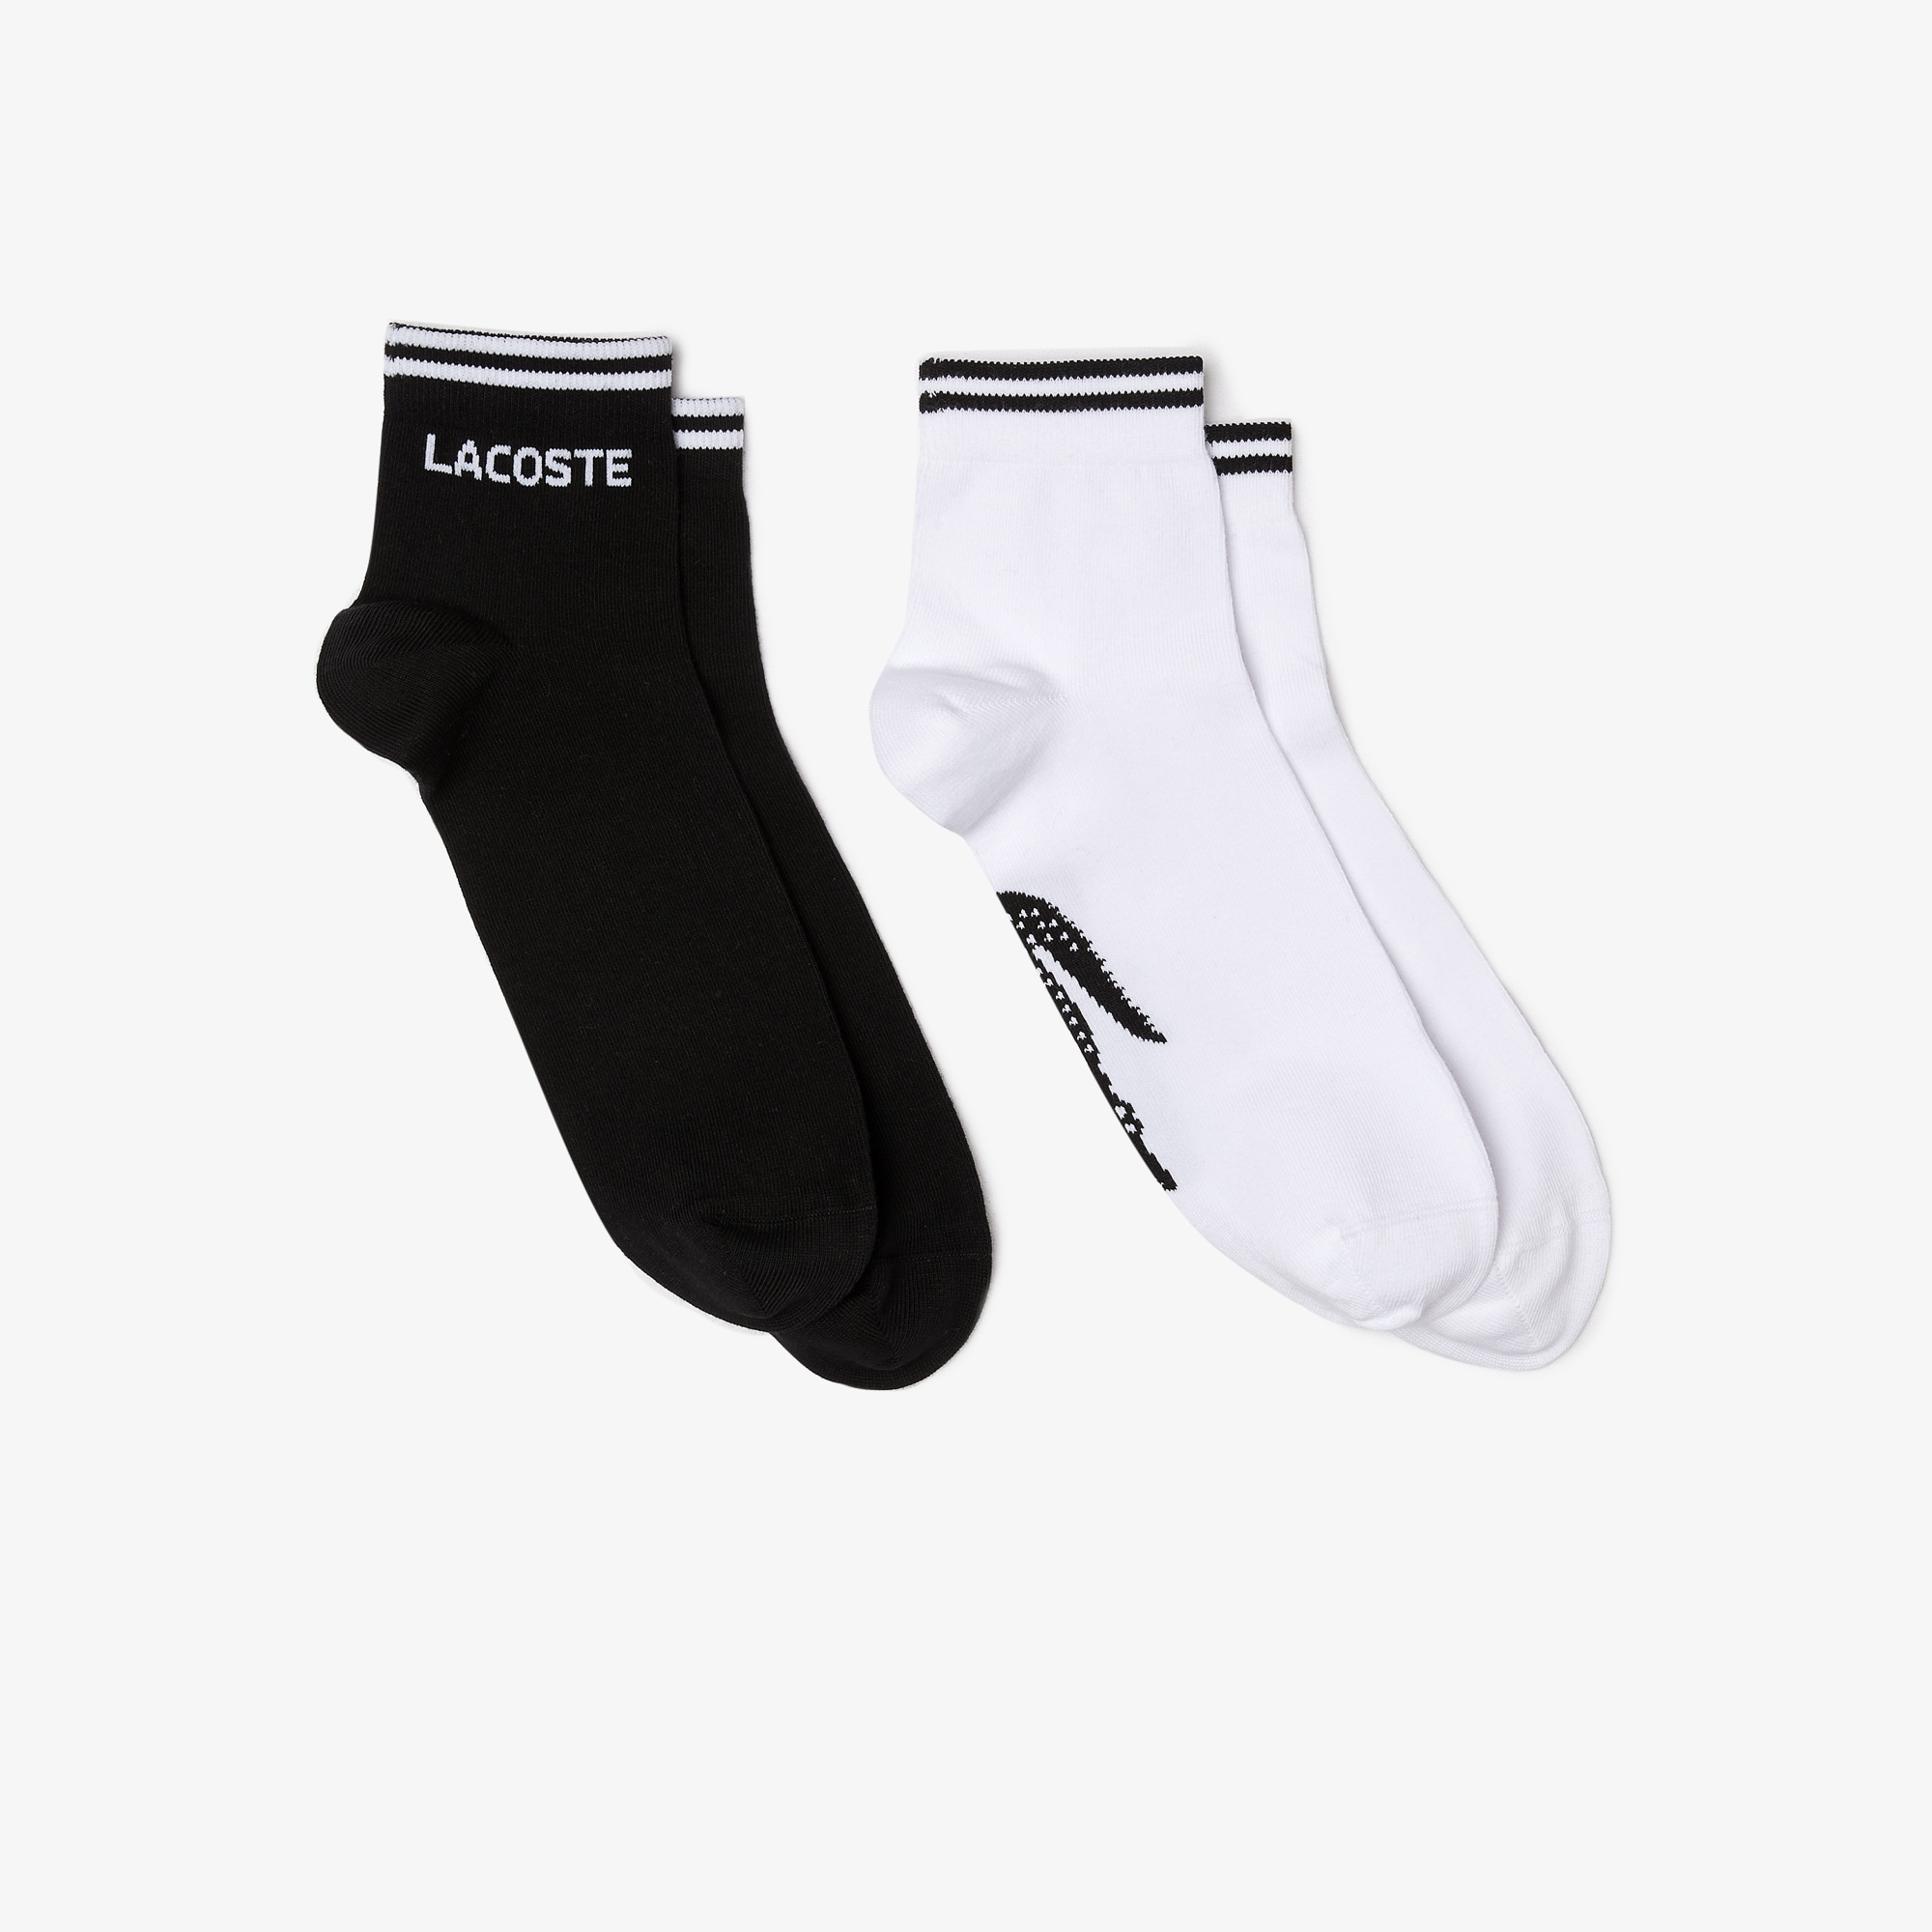 Men's Two-pack of  Tennis low-cut socks in jacquard jersey